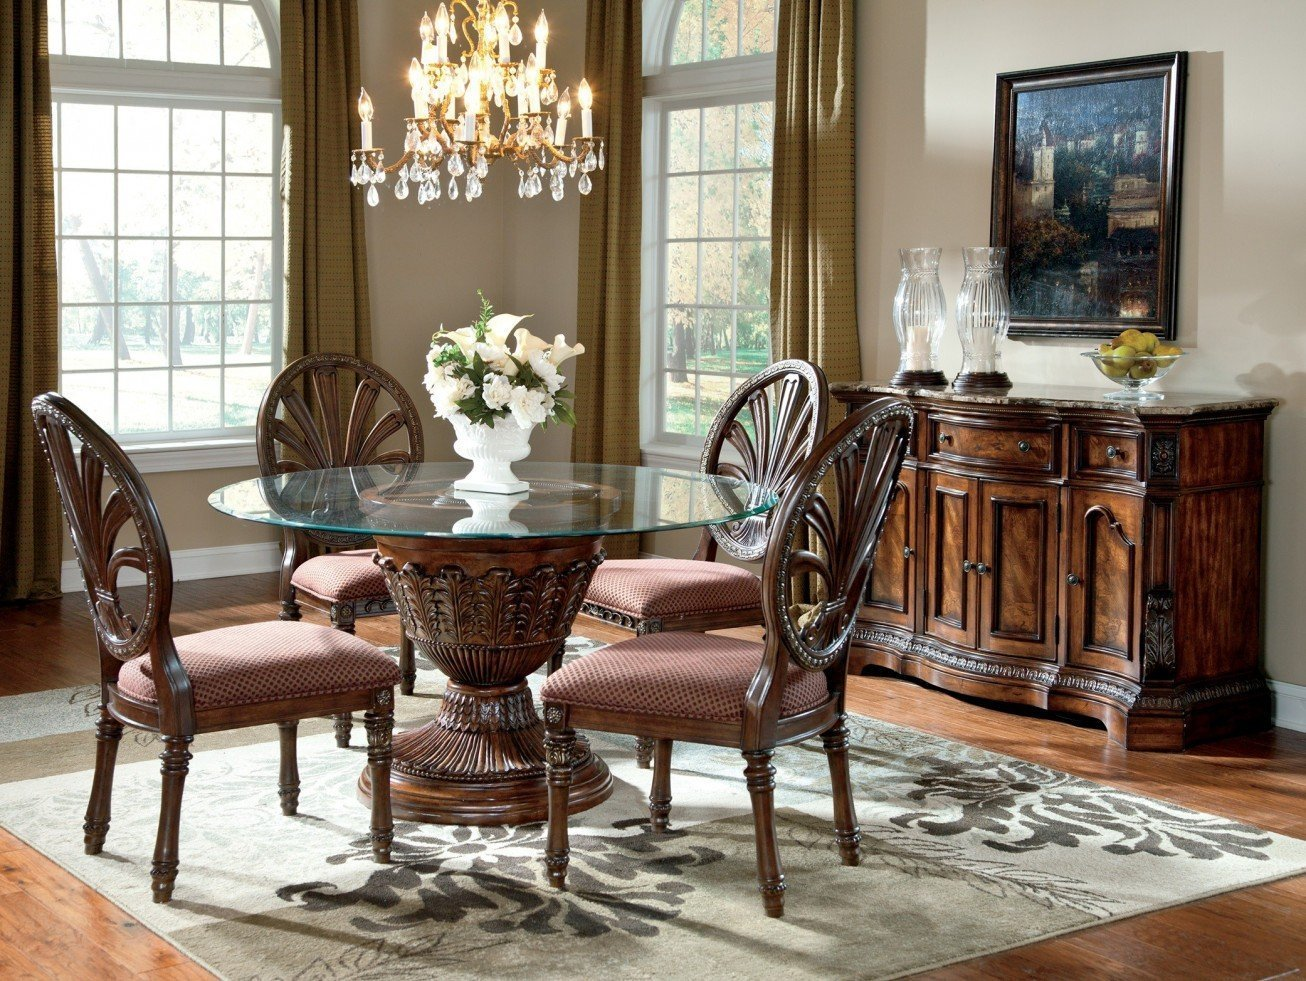 of types of dining room chairs that add value to your house article